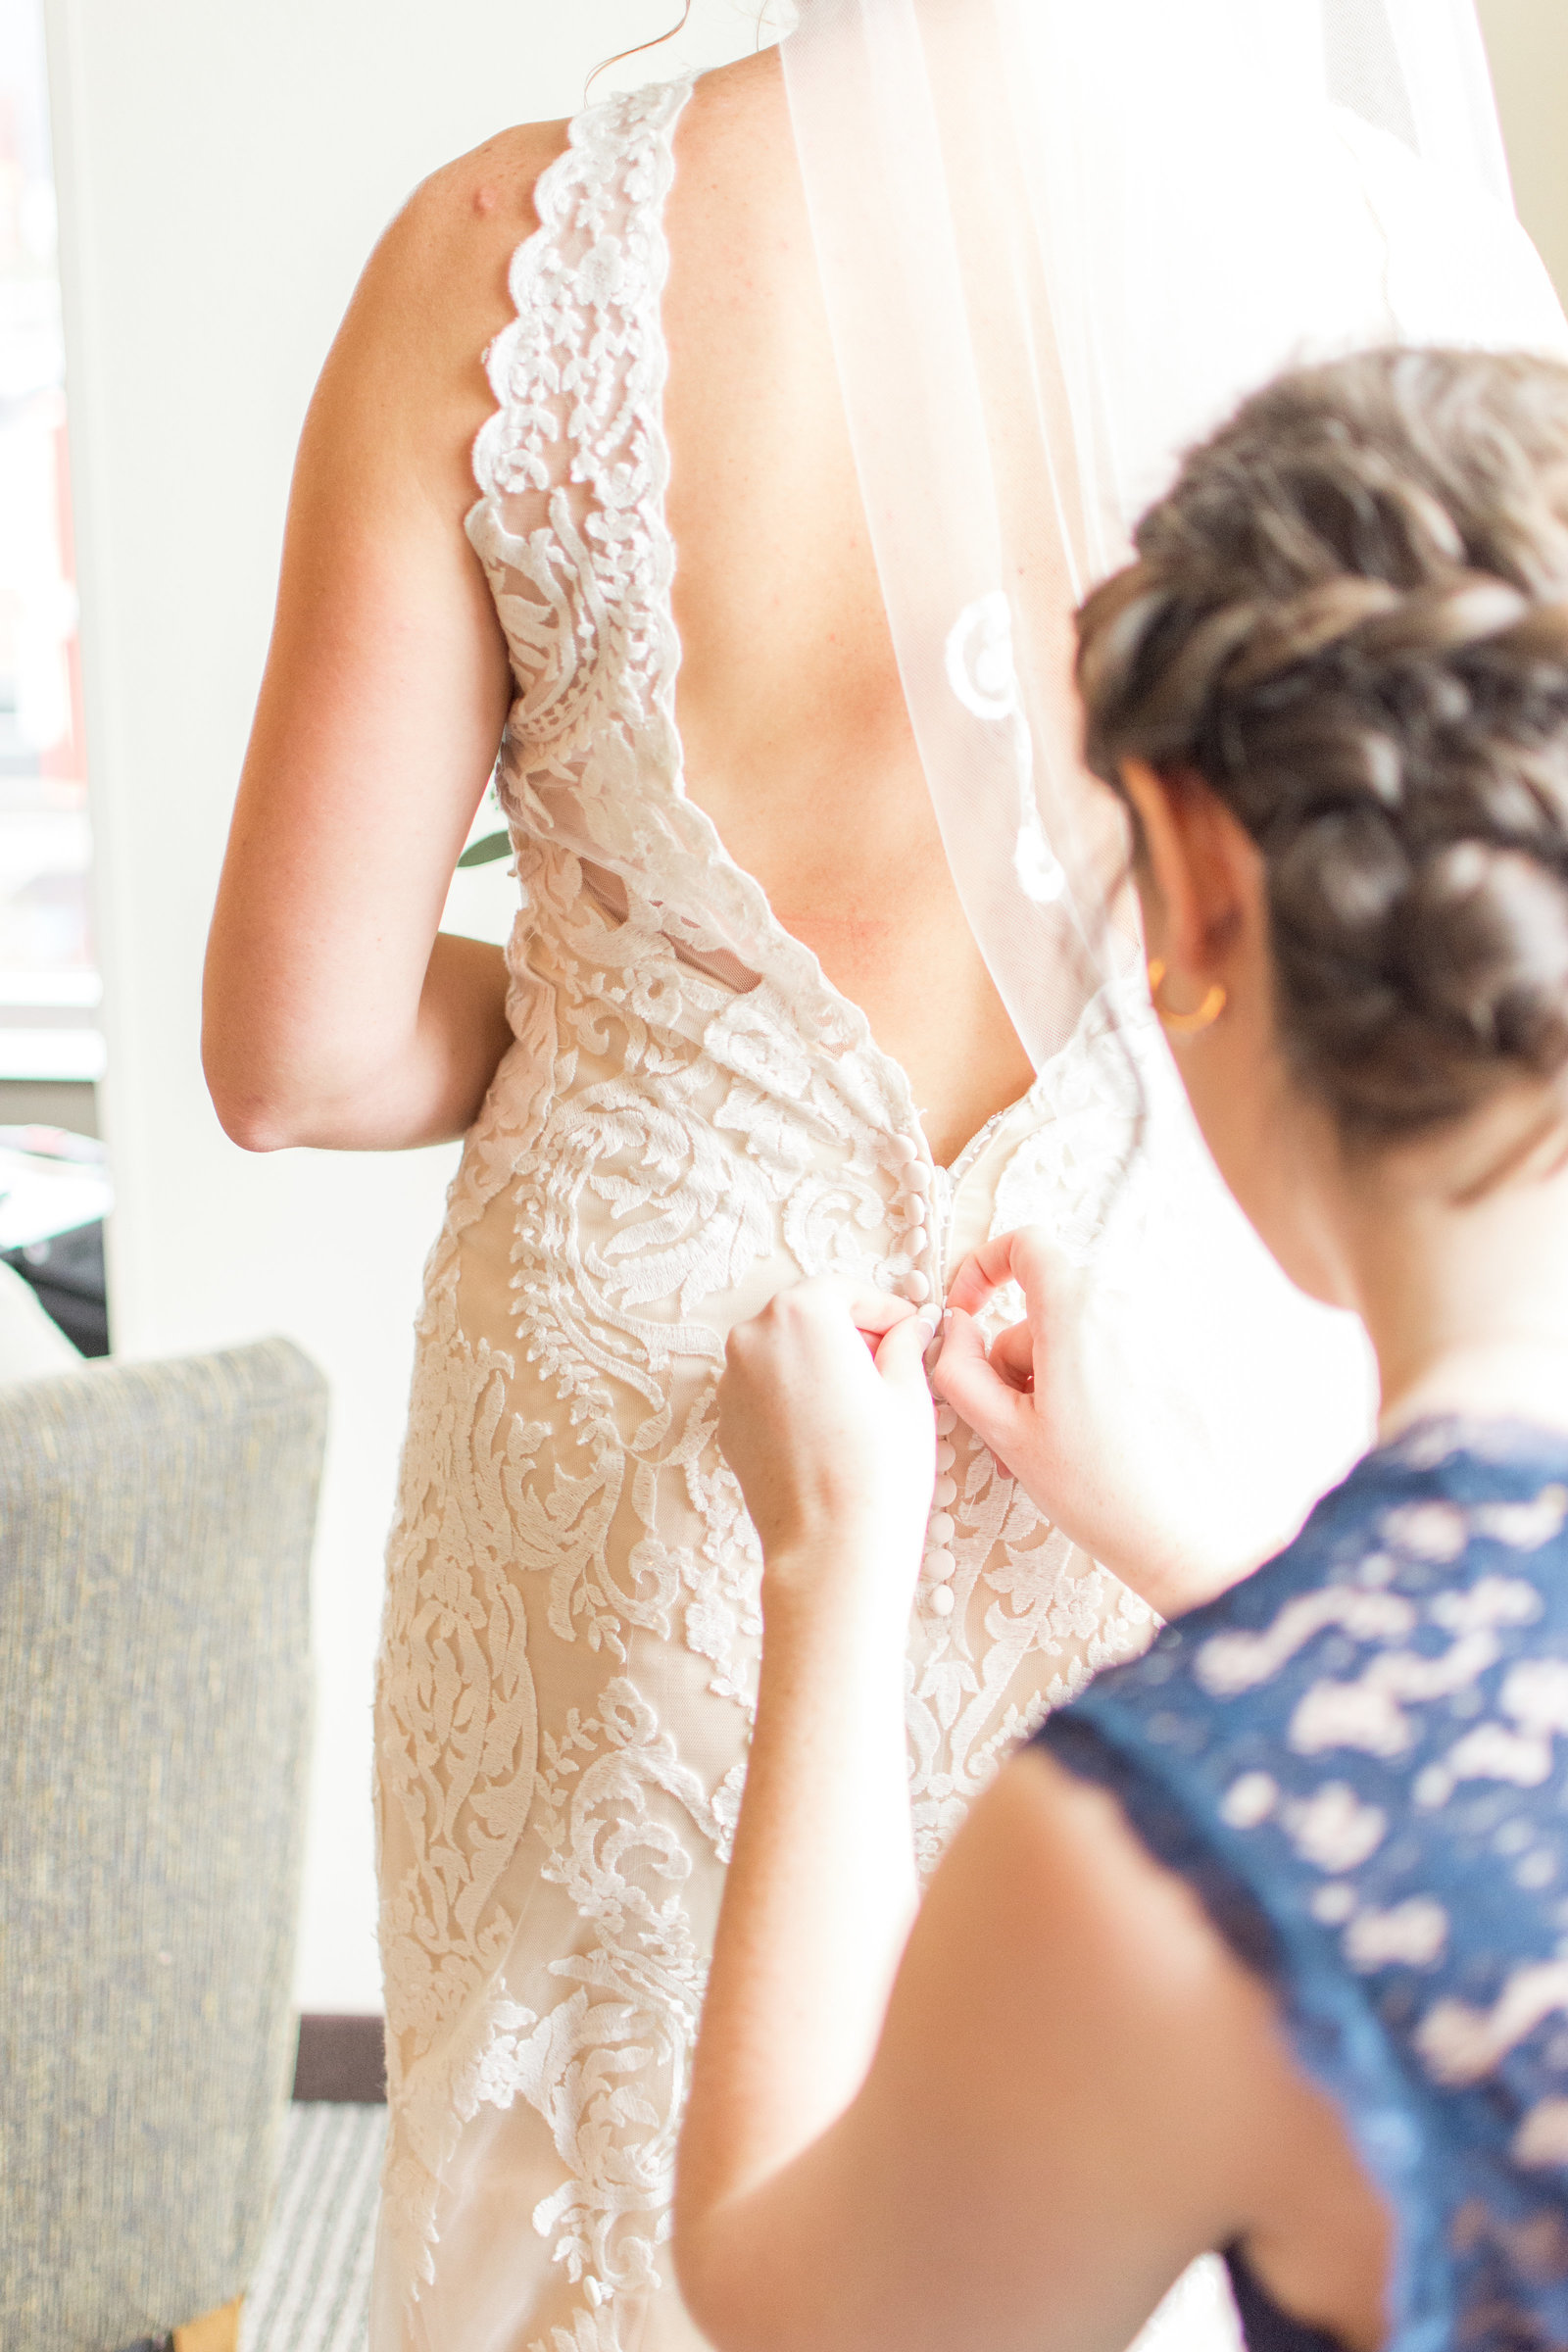 Buttoning Bride's Dress